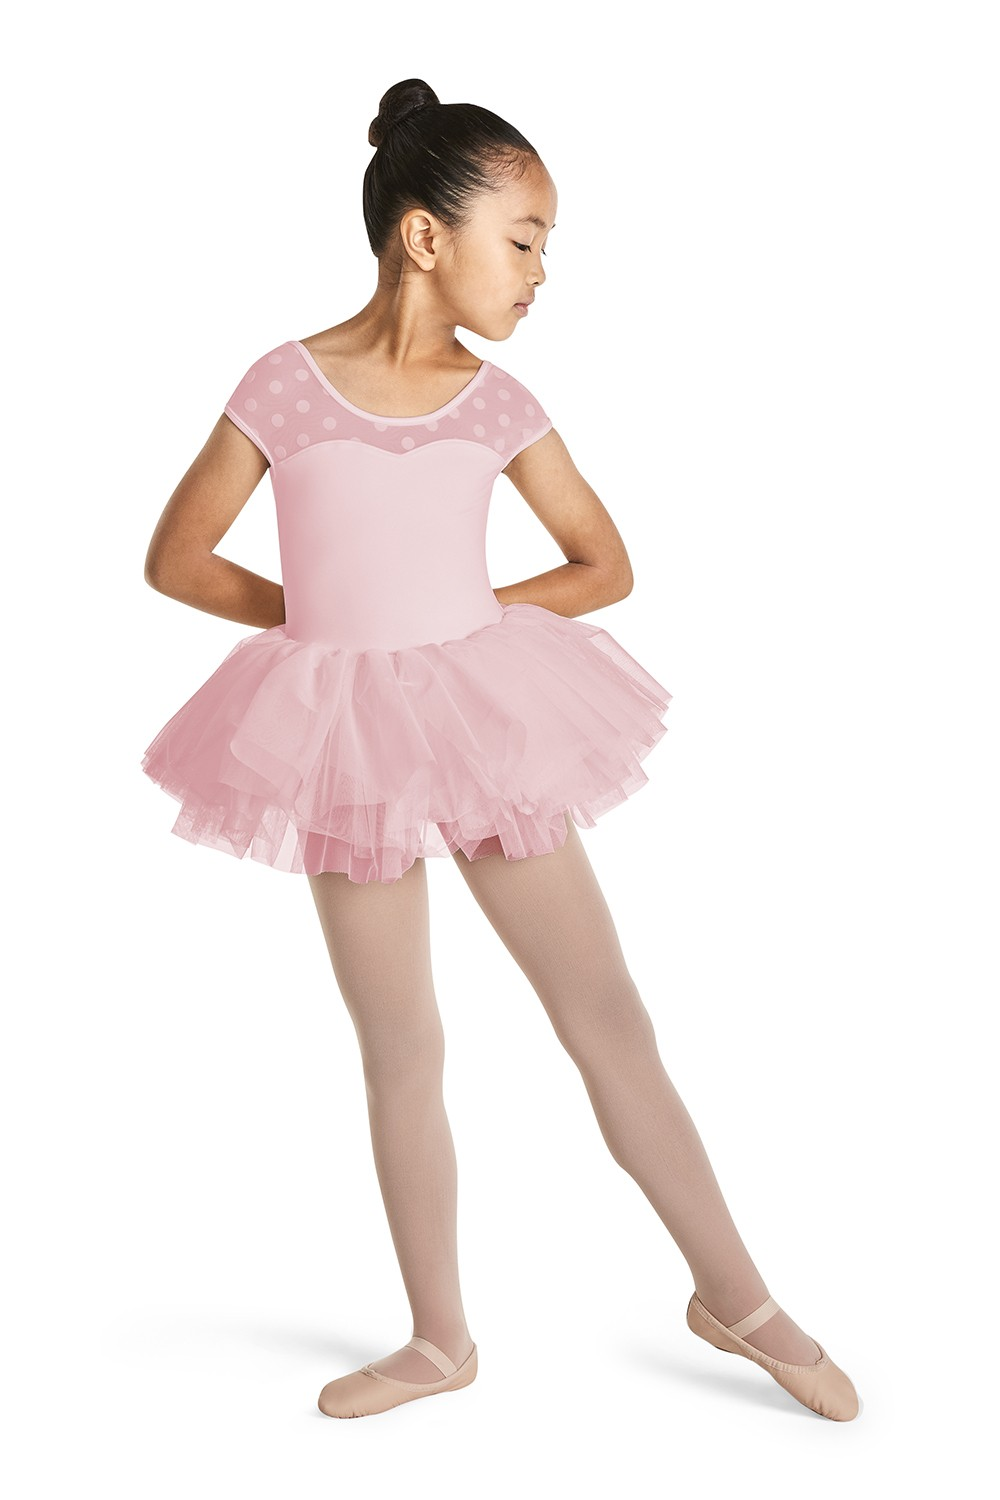 Cap Sleeve Tutu Dress Children's Dance Leotards